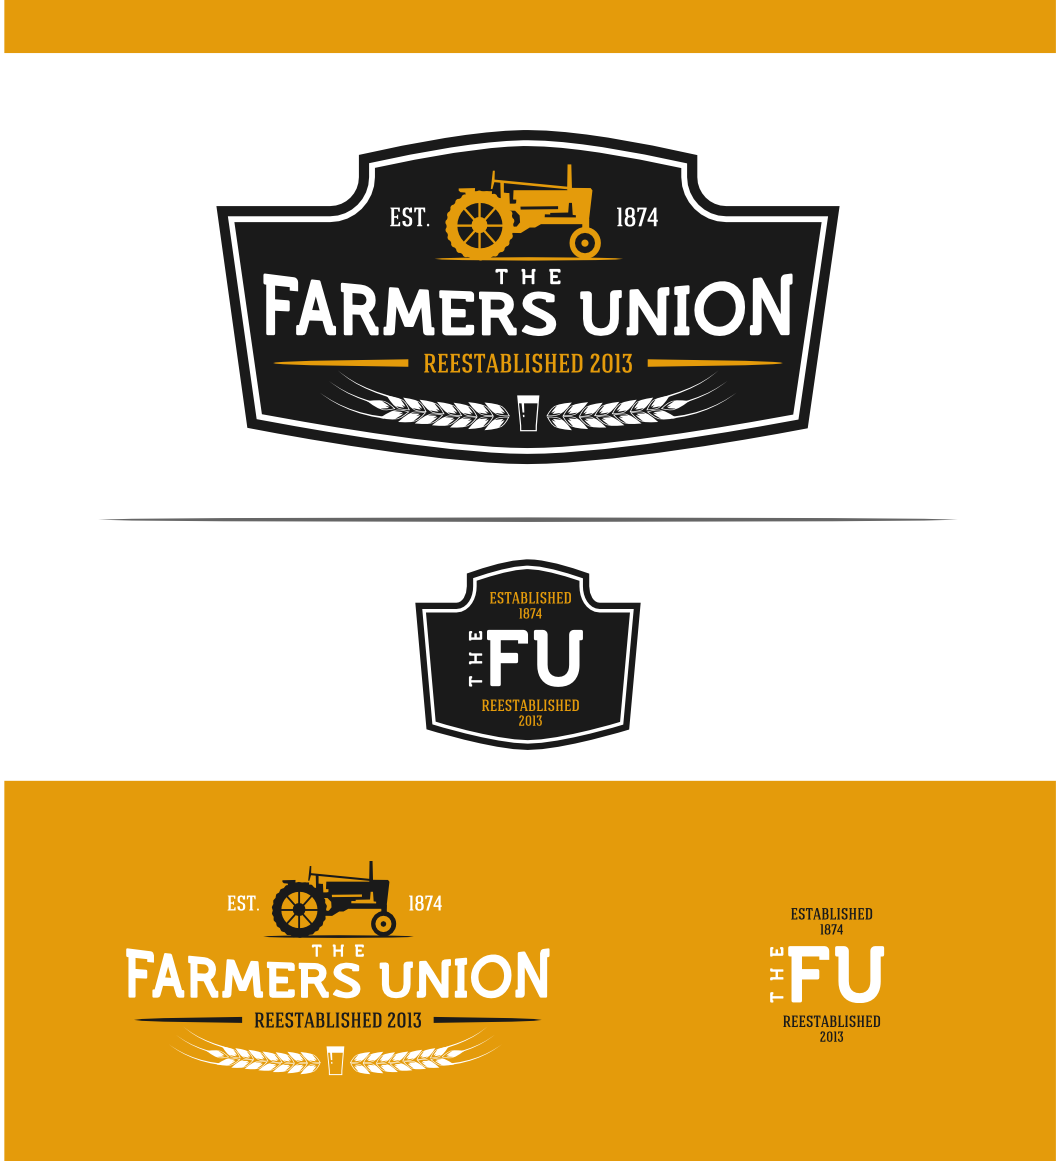 LOGO wanted for The Farmers Union